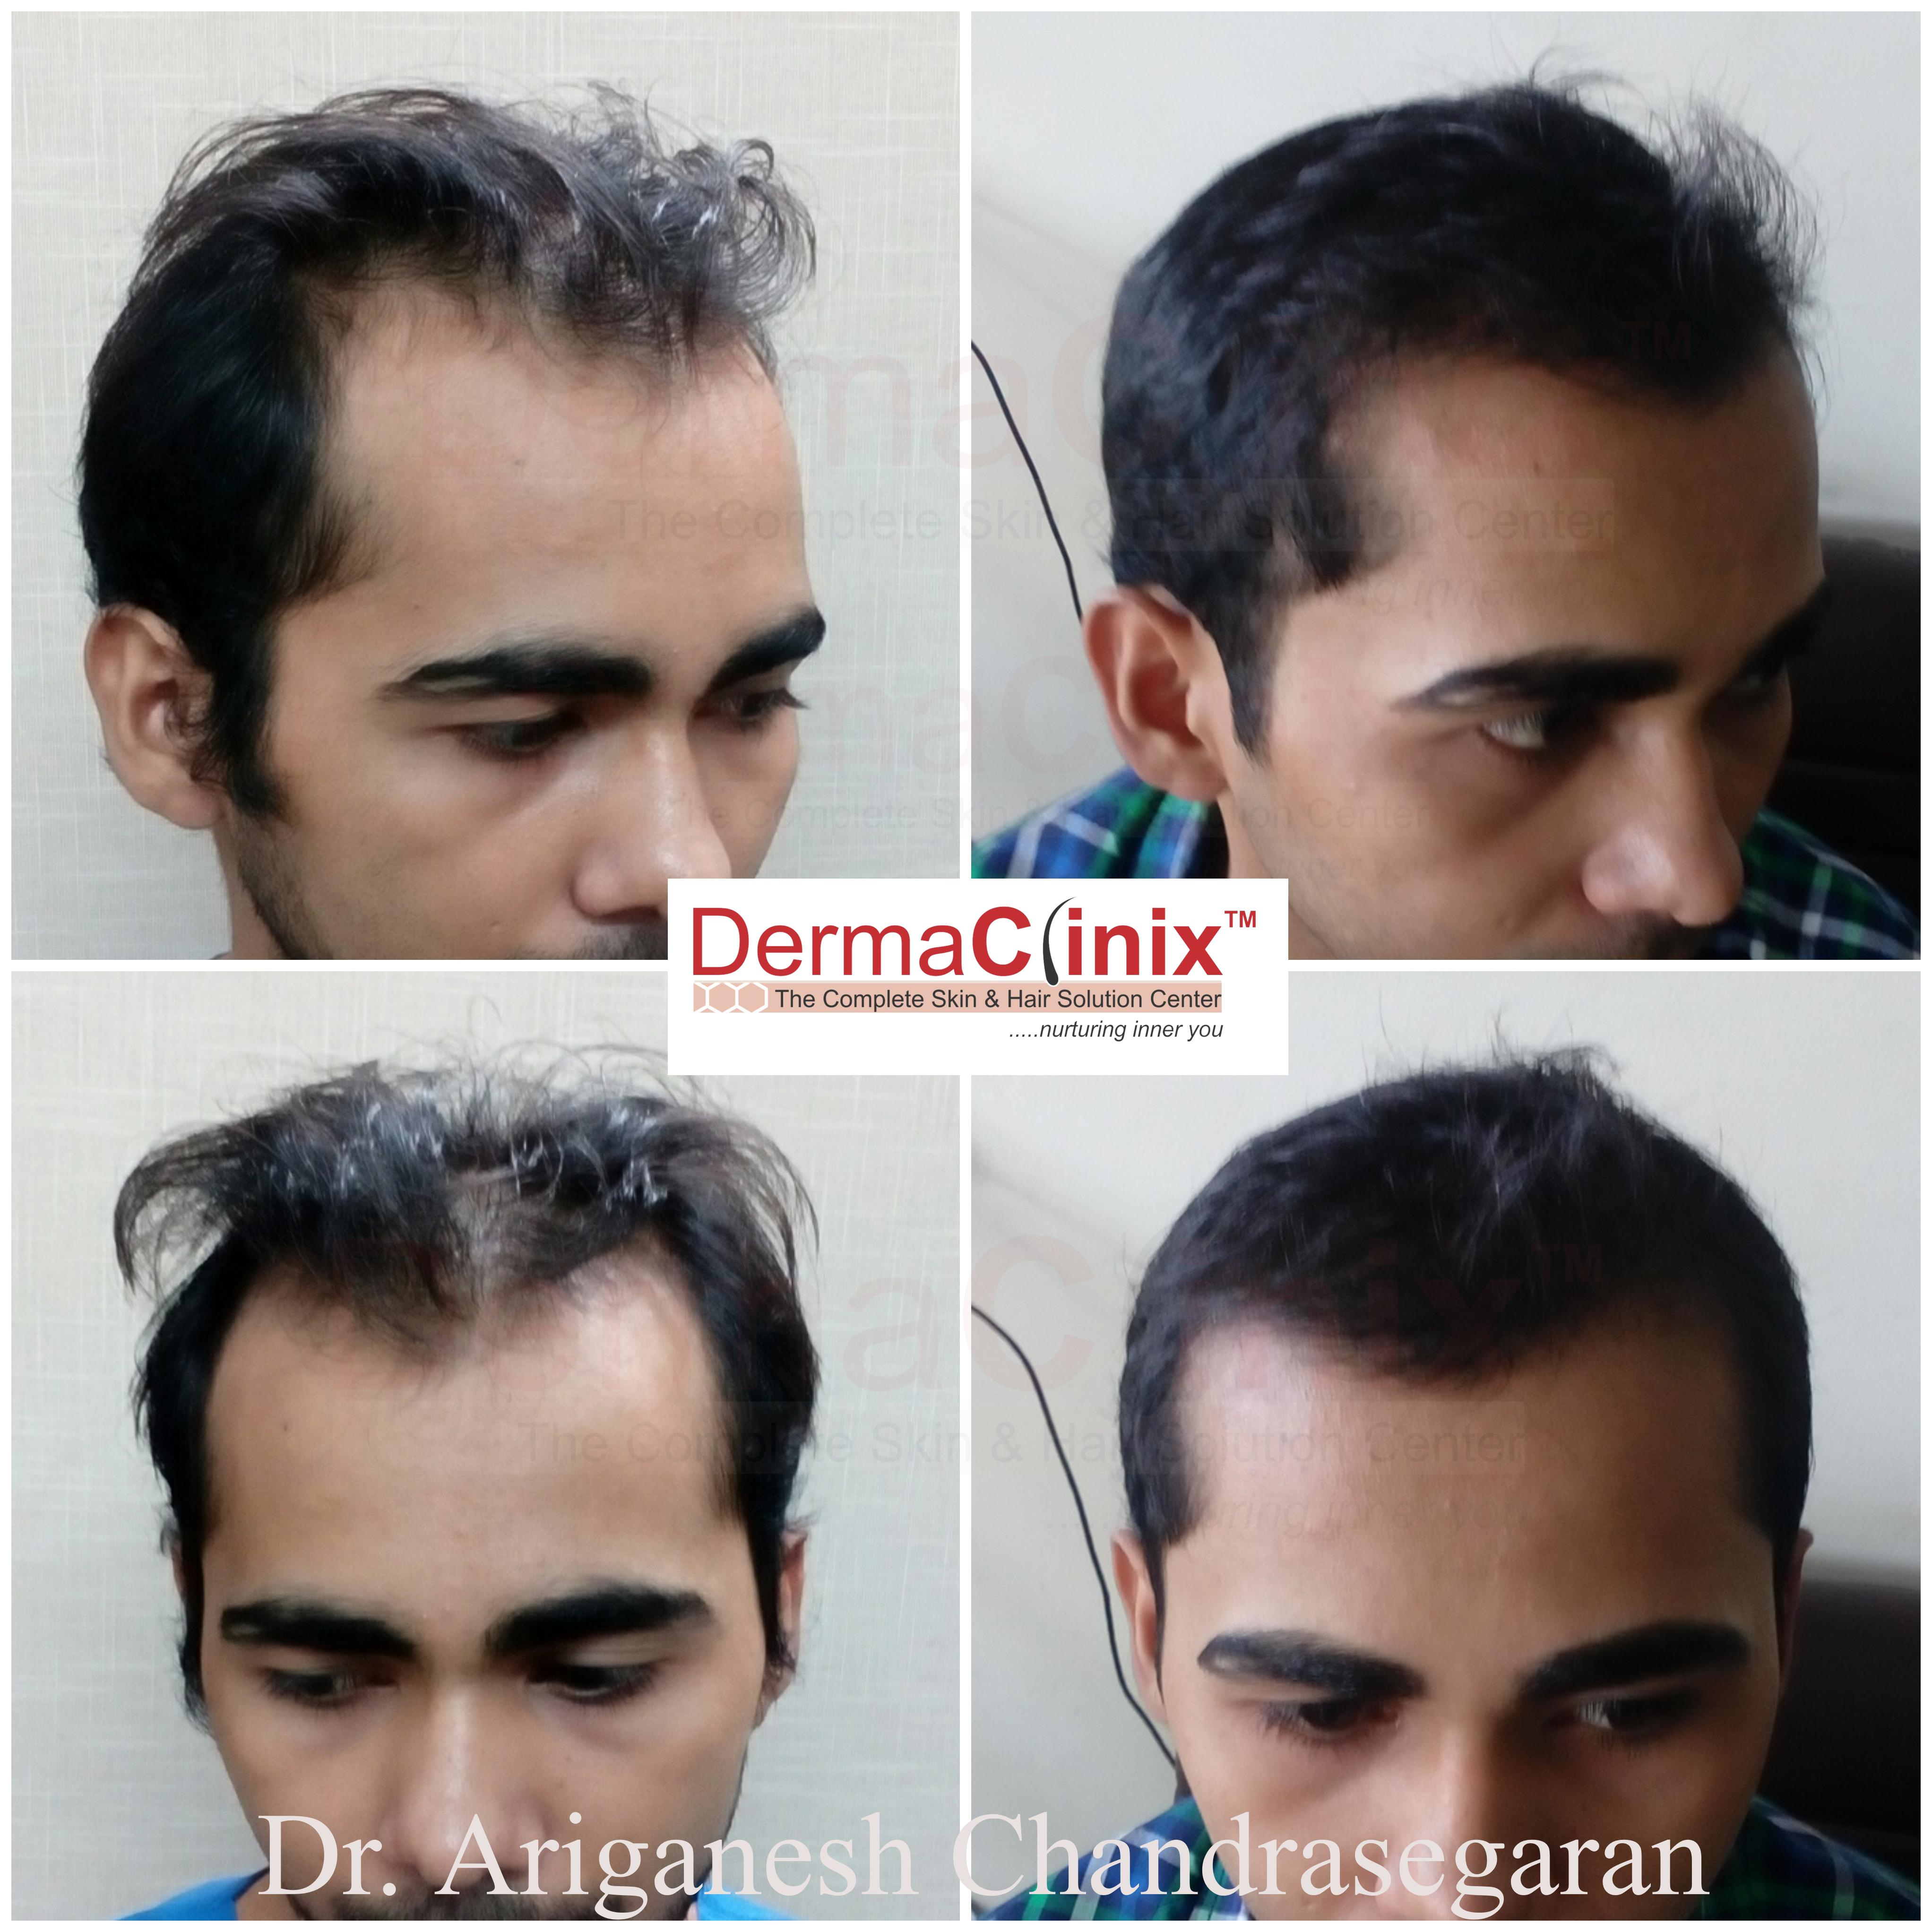 Number of Hair Transplantation One Can Get in a Lifetime